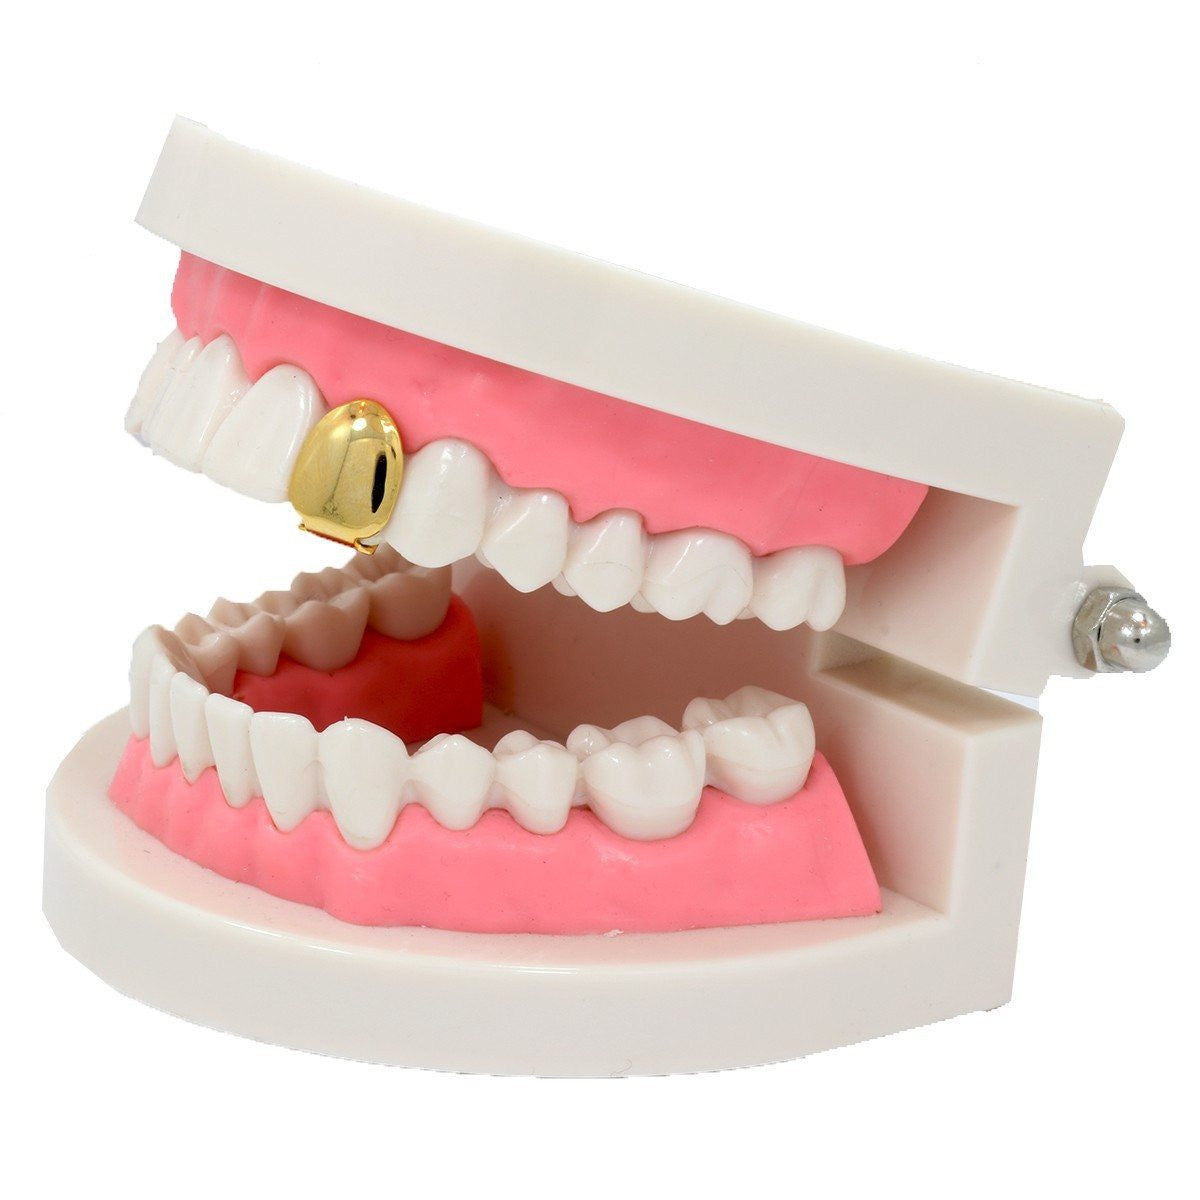 GOLD PLAIN SINGLE TOOTH GRILLZ